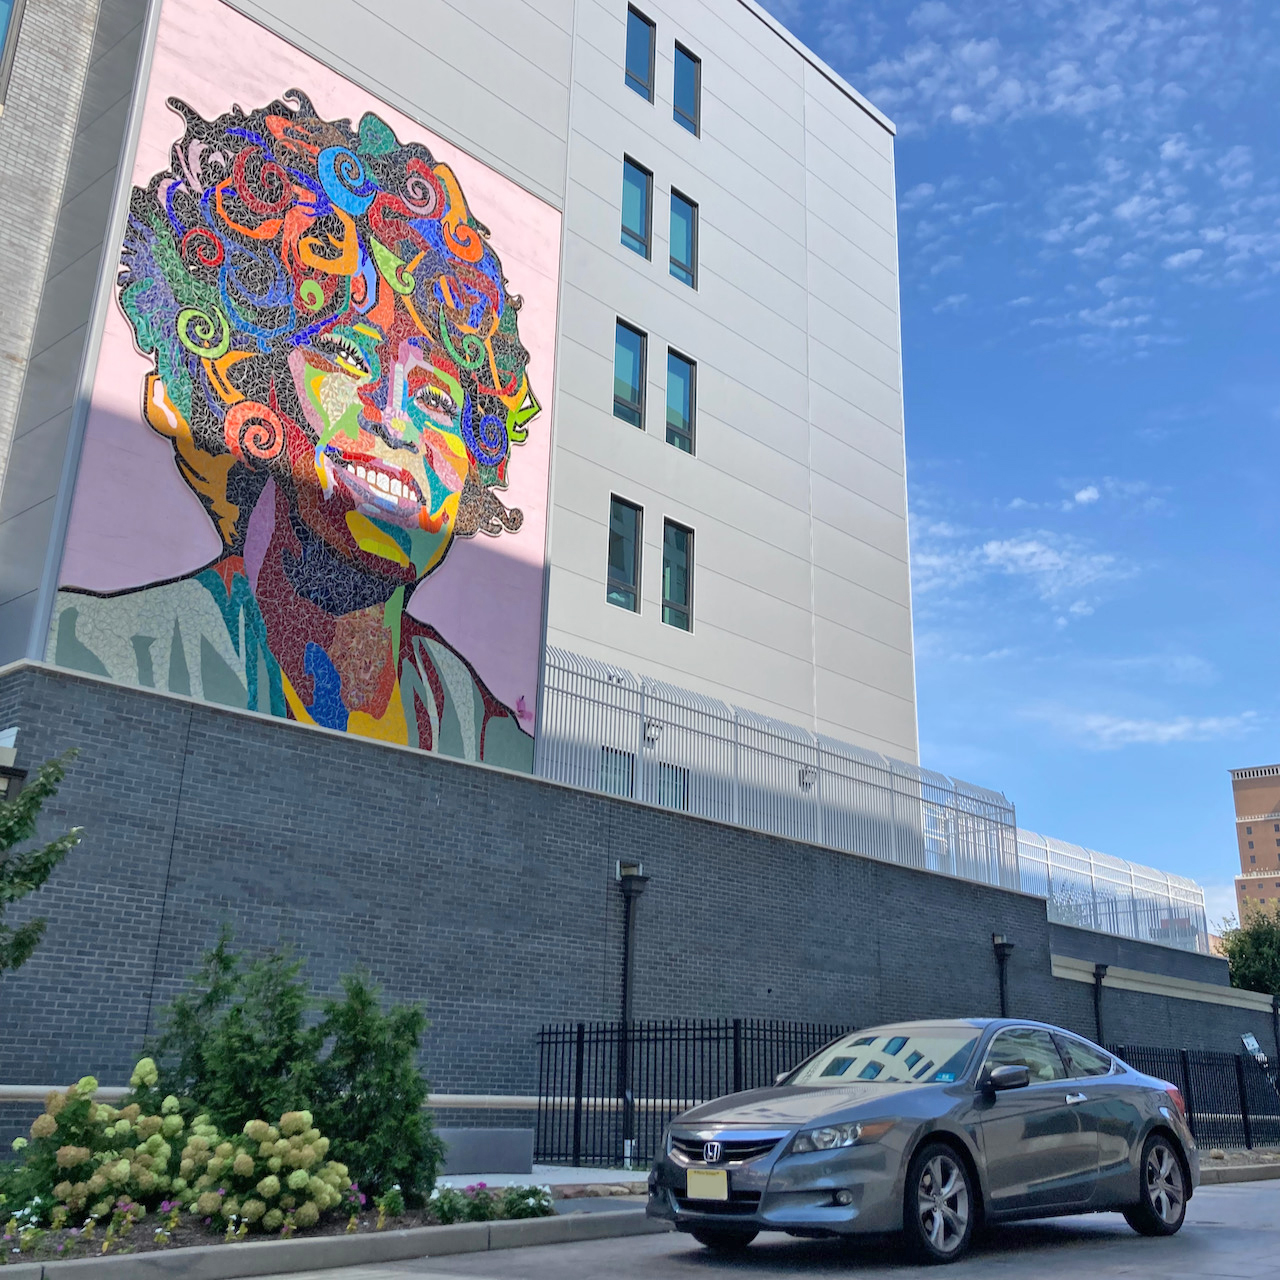 2012 Honda Accord parked in front of Whitney Houston Mural on side of building.